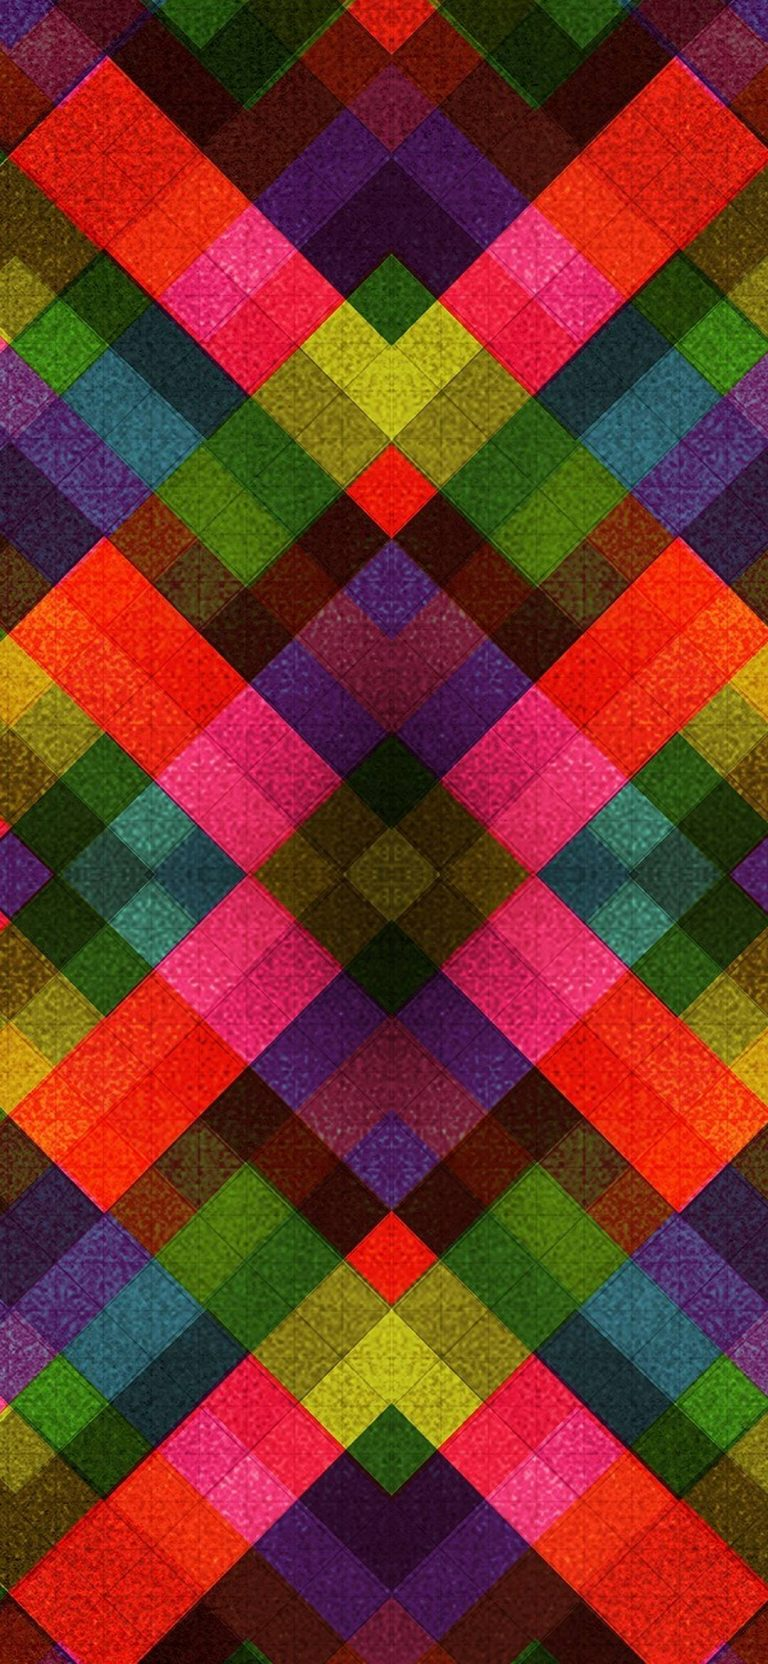 Abstract Multicolor Patterns Retro 1080x2340 768x1664